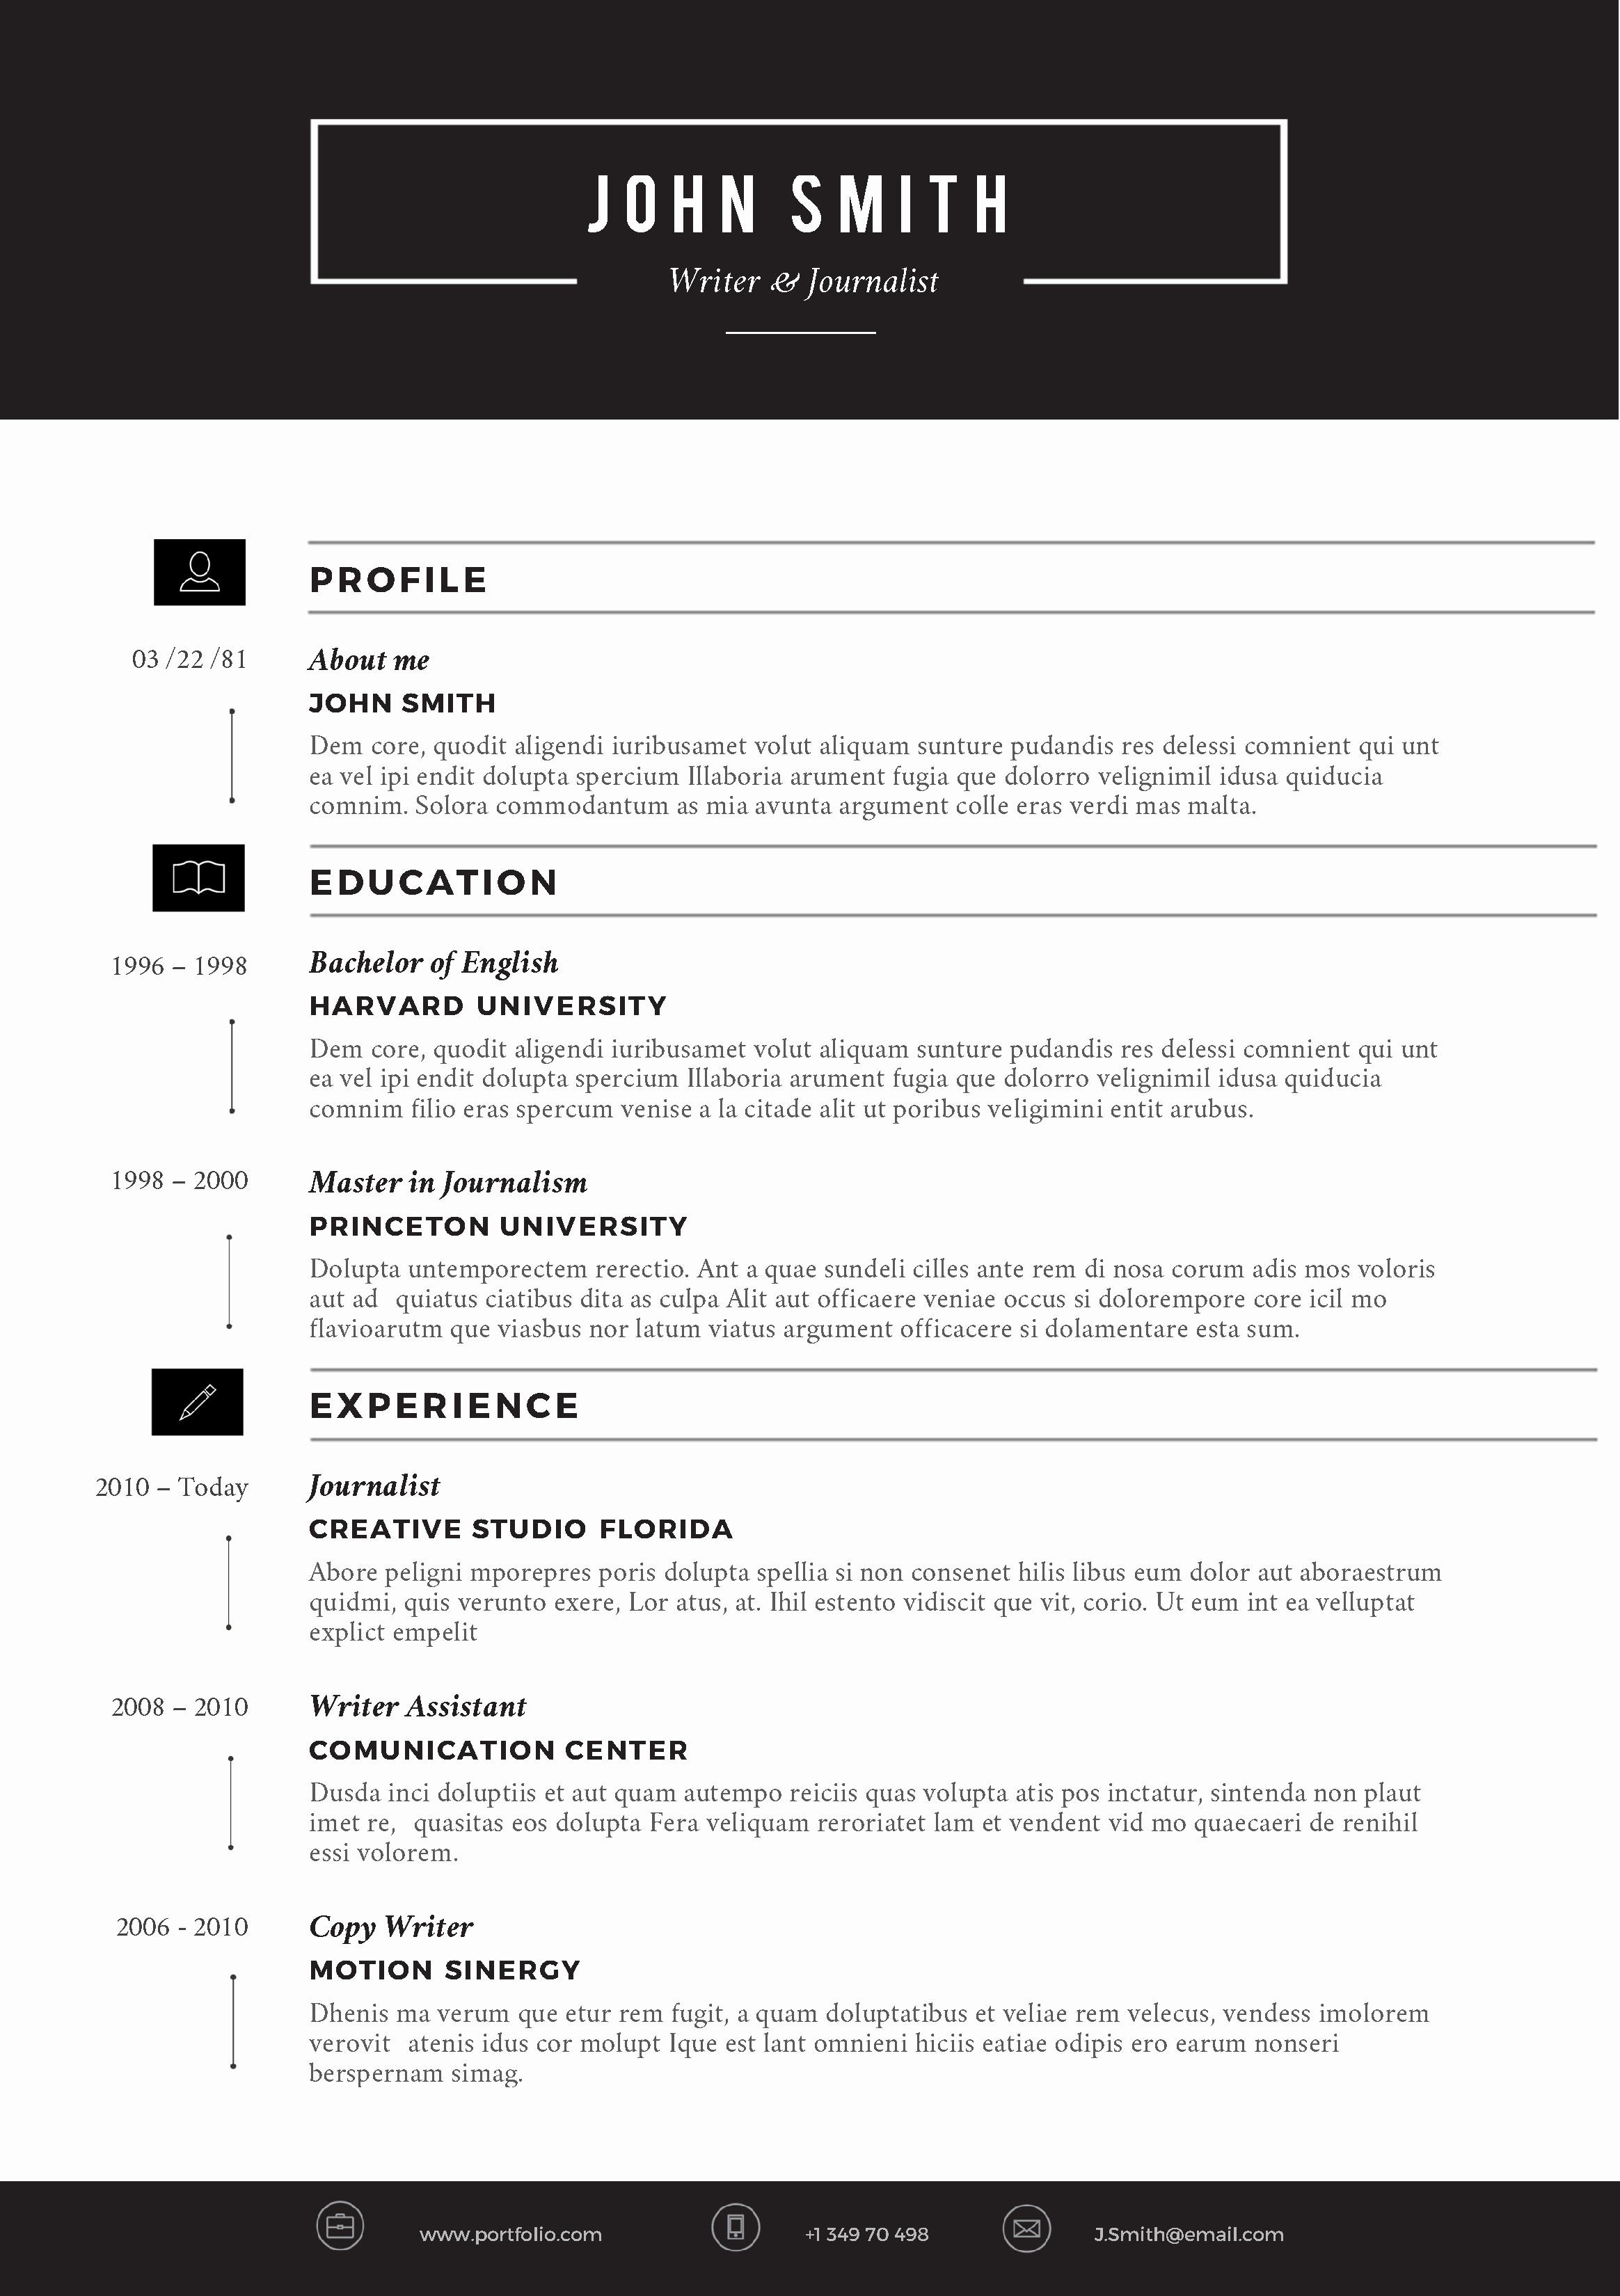 Ms Office Templates for Word Inspirational Fice Resume Template Cover Letter Portfolio